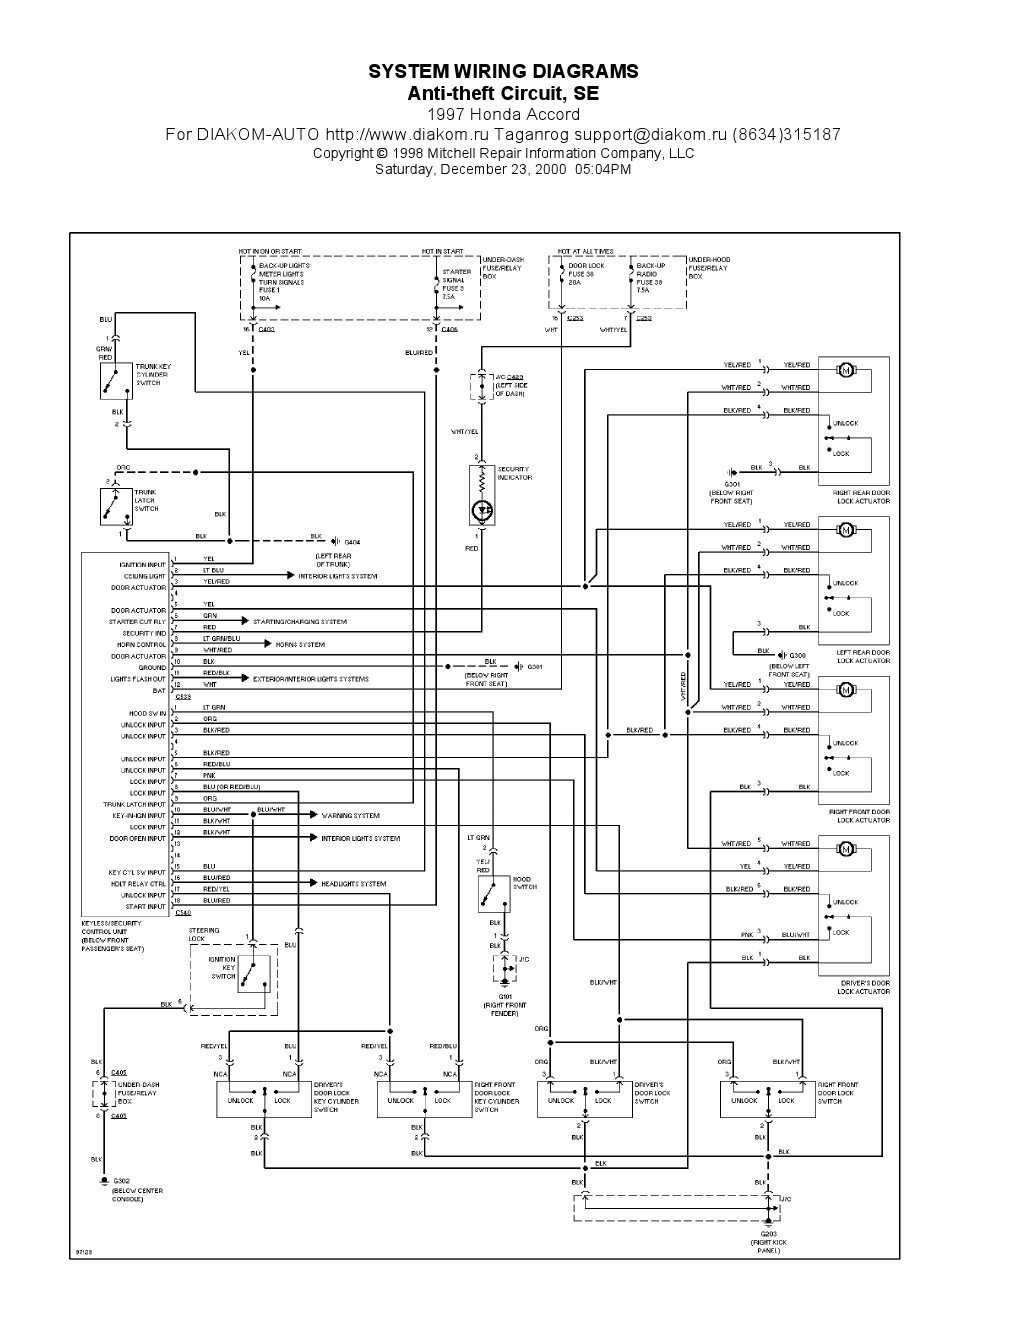 hight resolution of 97 accord wiring diagram wiring diagram explained 97 accord sedan 97 accord wire diagram